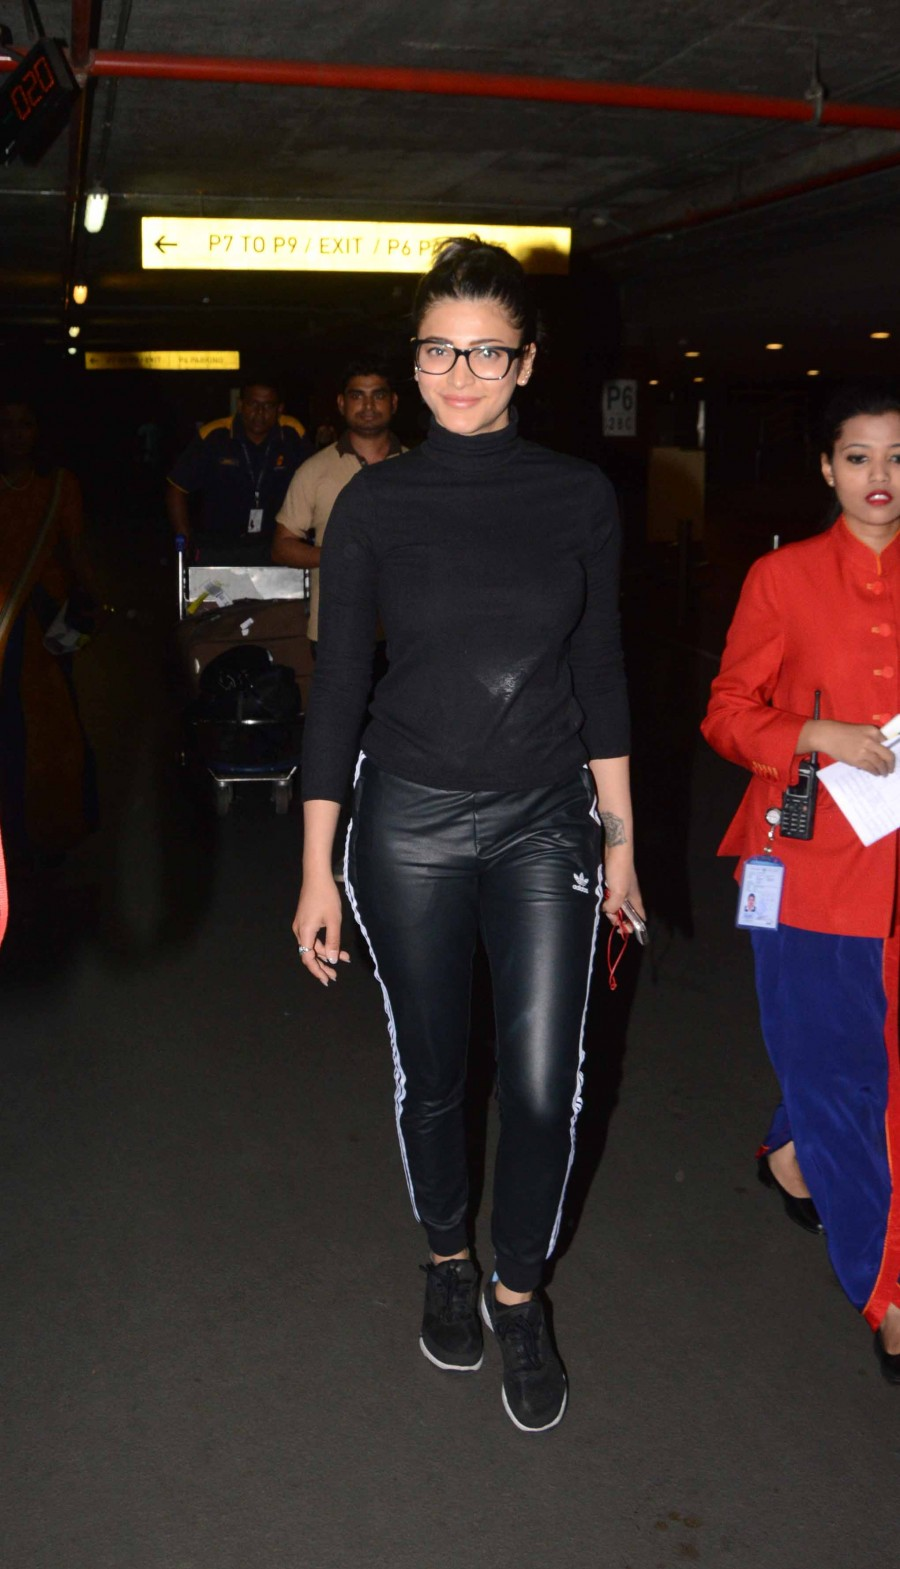 Sonakshi Sinha,Shruti Haasan,Raai Laxmi,Alia Bhatt,Elli Avram,Sonakshi Sinha at Mumbai Airport,Shruti Haasan spotted at Mumbai Airport,Raai Laxmi spotted at Mumbai Airport,Alia Bhatt spotted at Mumbai Airport,Celebs spotted at Mumbai Airport